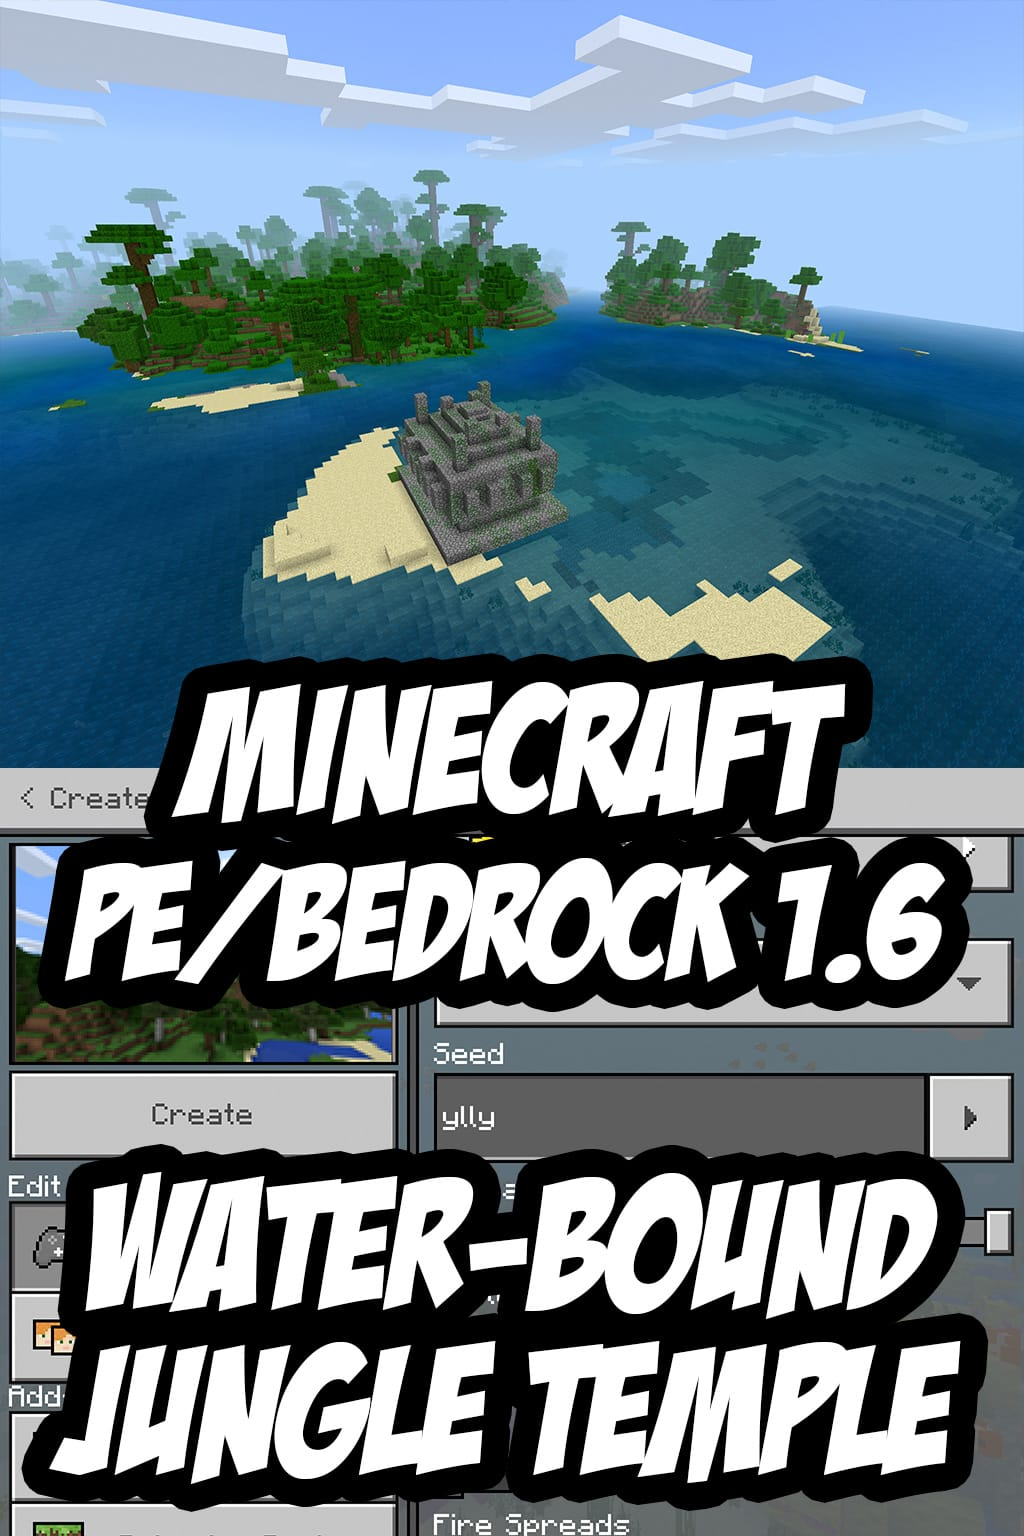 Minecraft PE/Bedrock Seed:ylly or by Seed Number:3711968